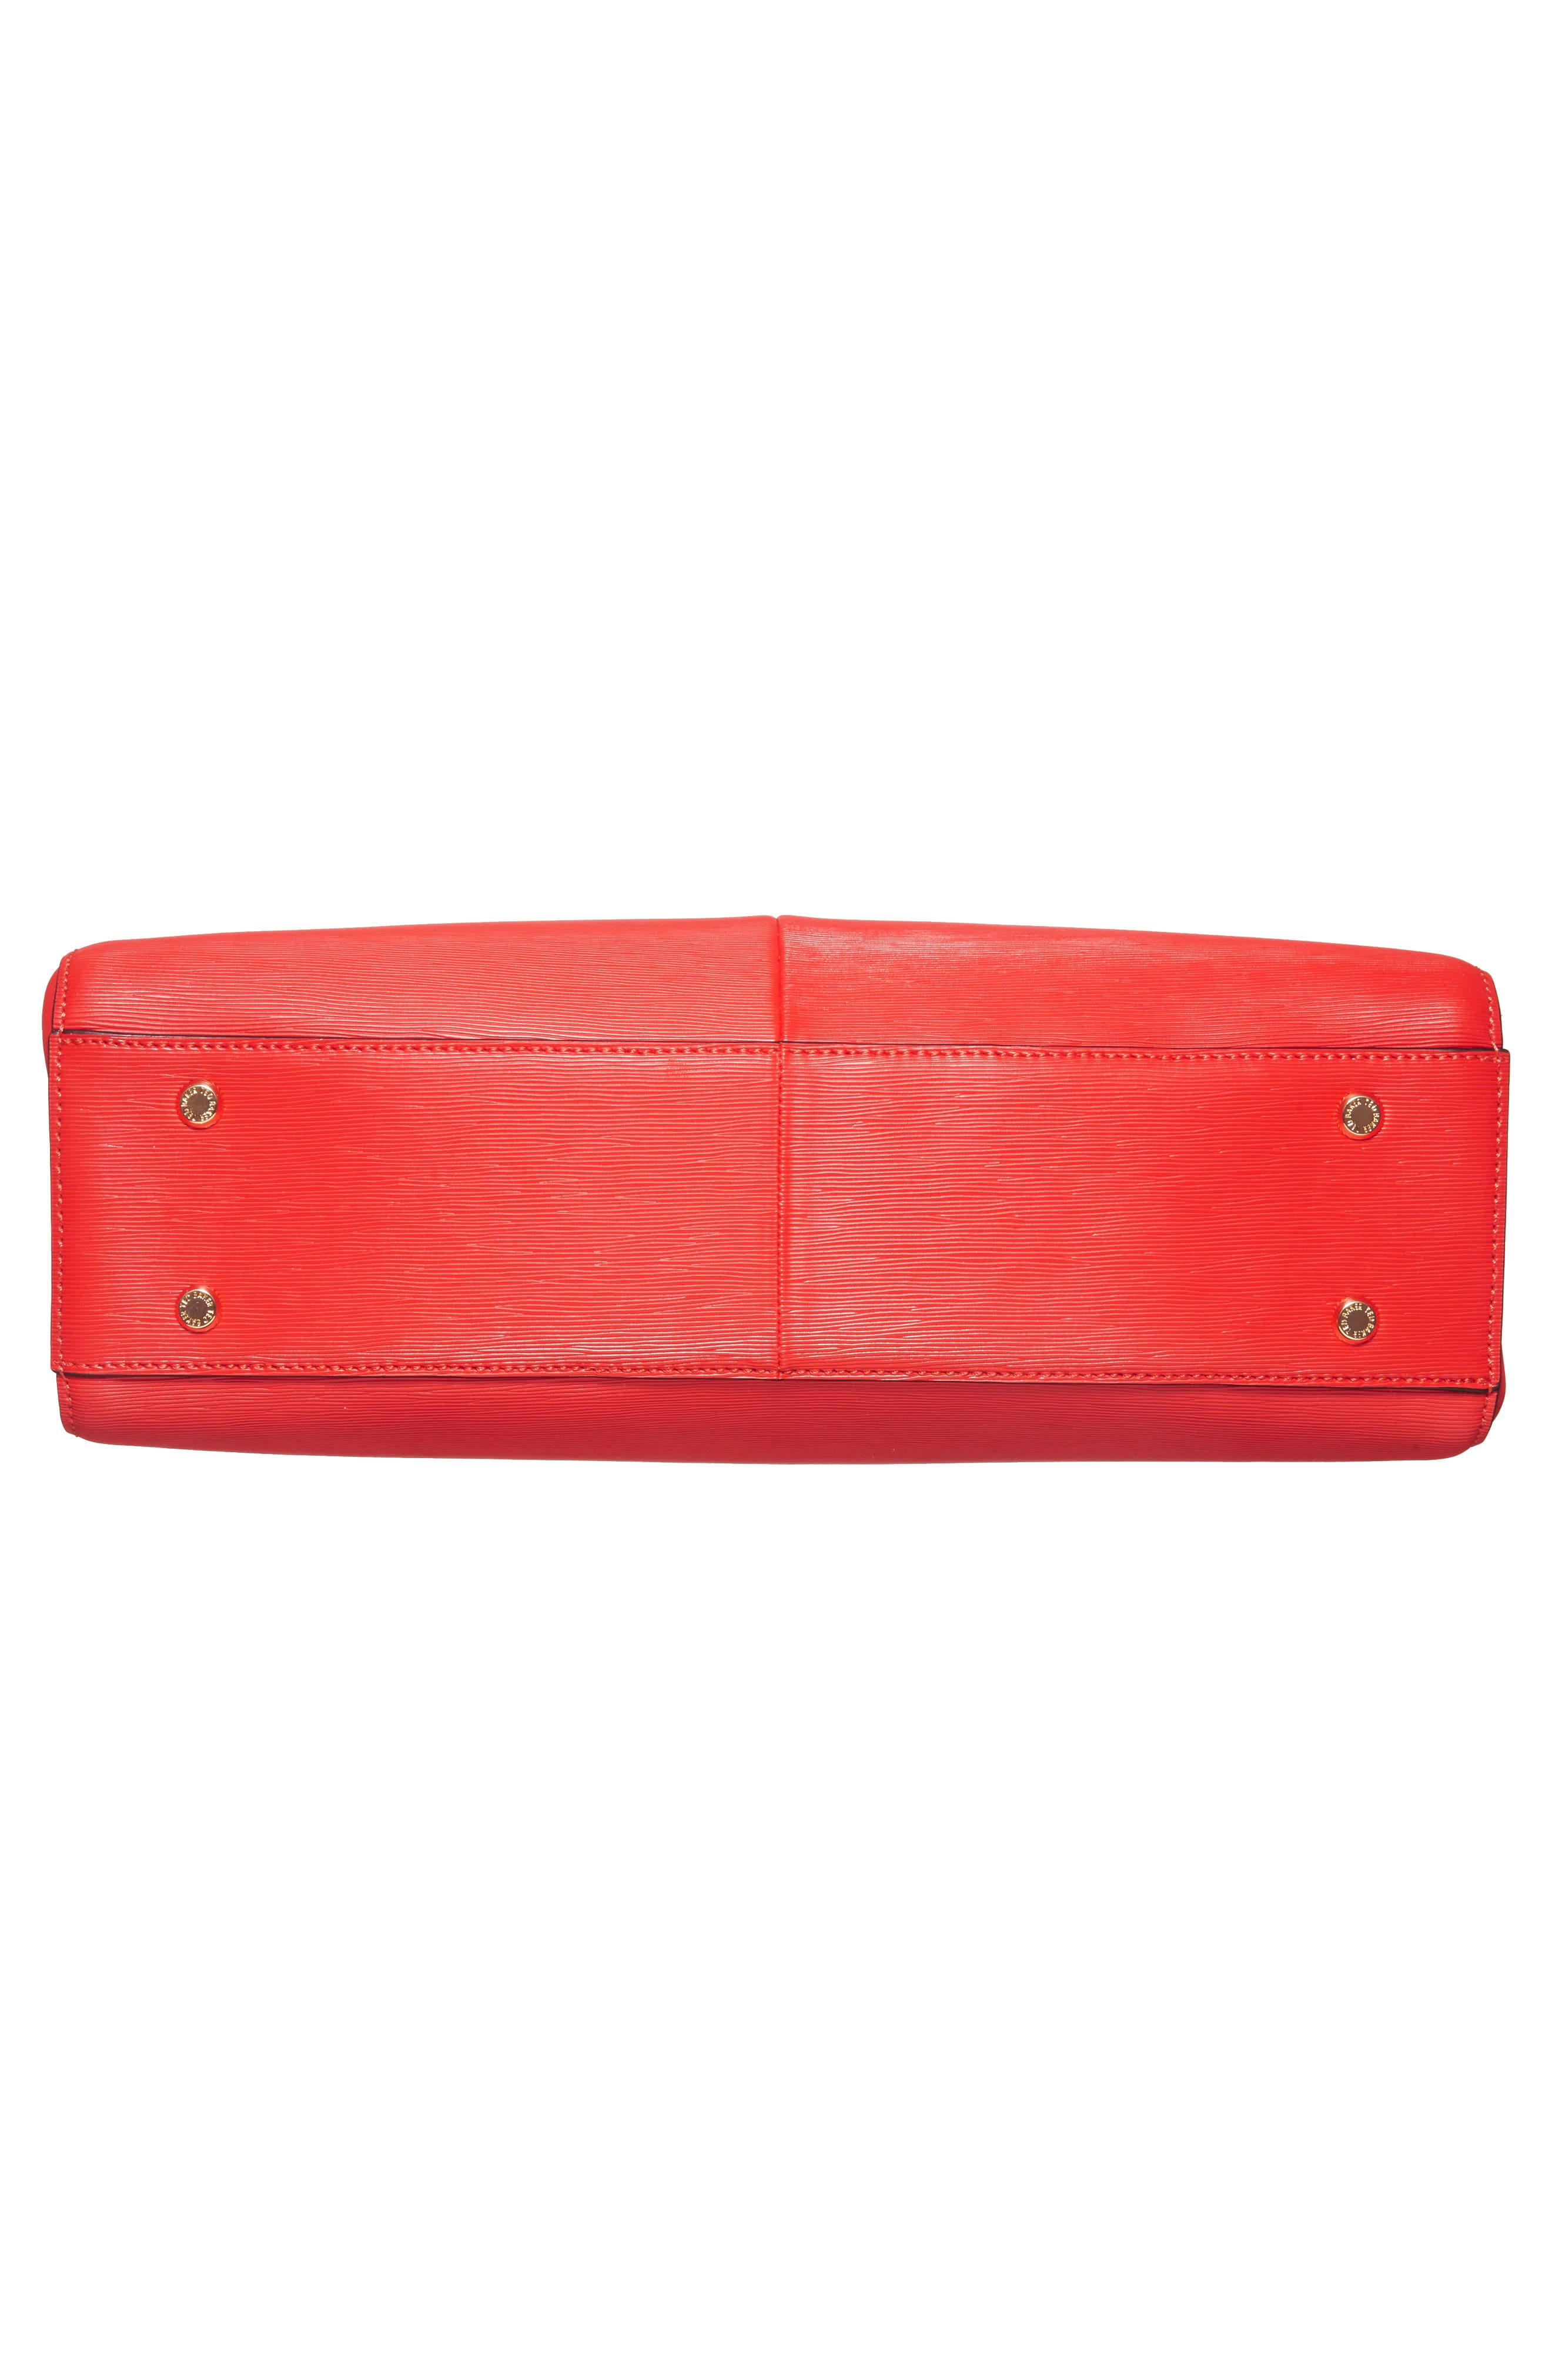 Callaa Bow Leather Shopper,                             Alternate thumbnail 5, color,                             Bright Red